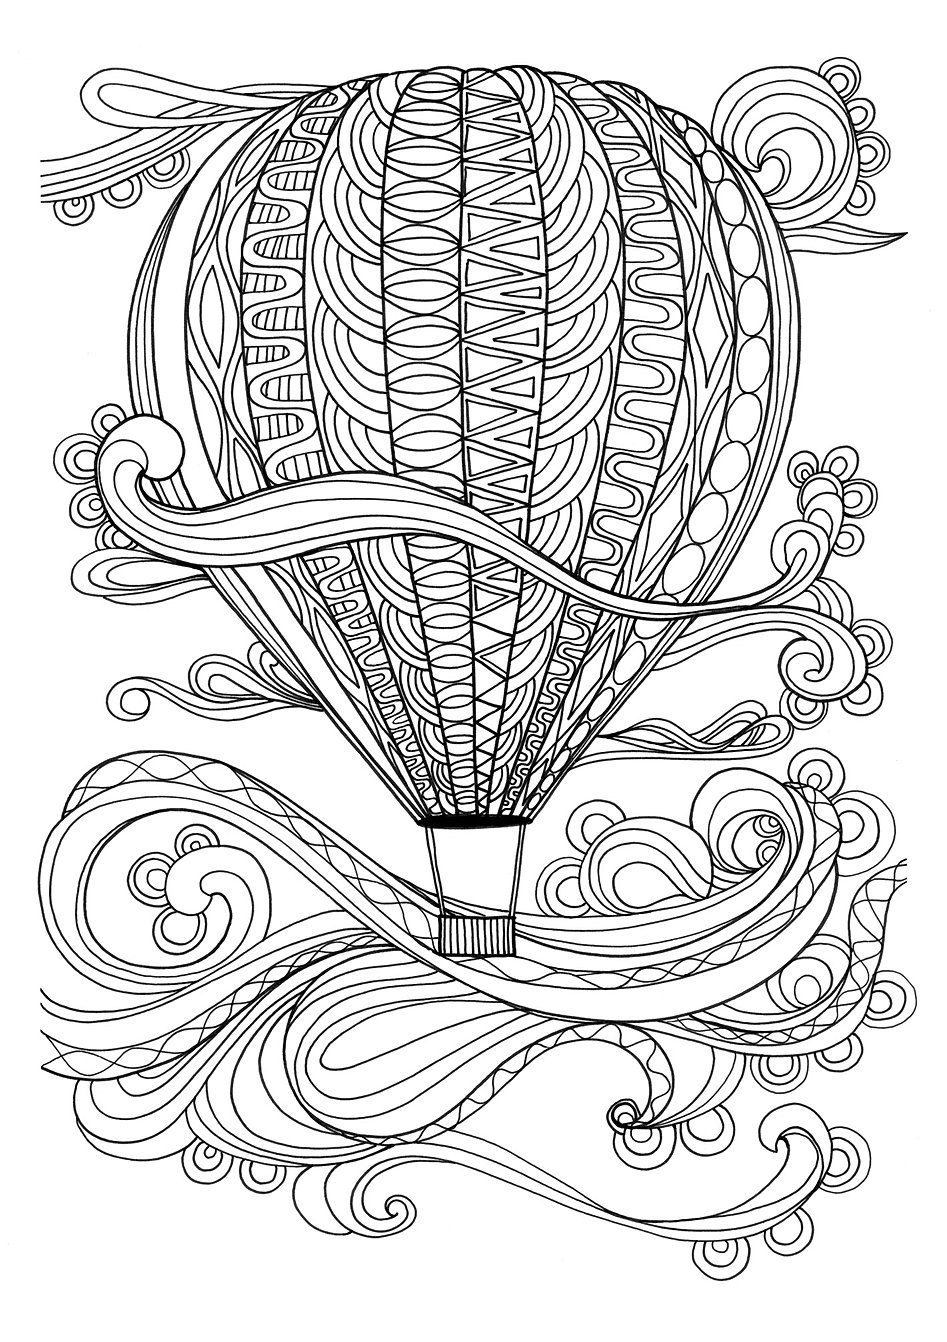 Art therapy coloring book michael omara - Michael Omara Coloring Books Chellie Carroll Illustration Art Colour Therapy Postcards